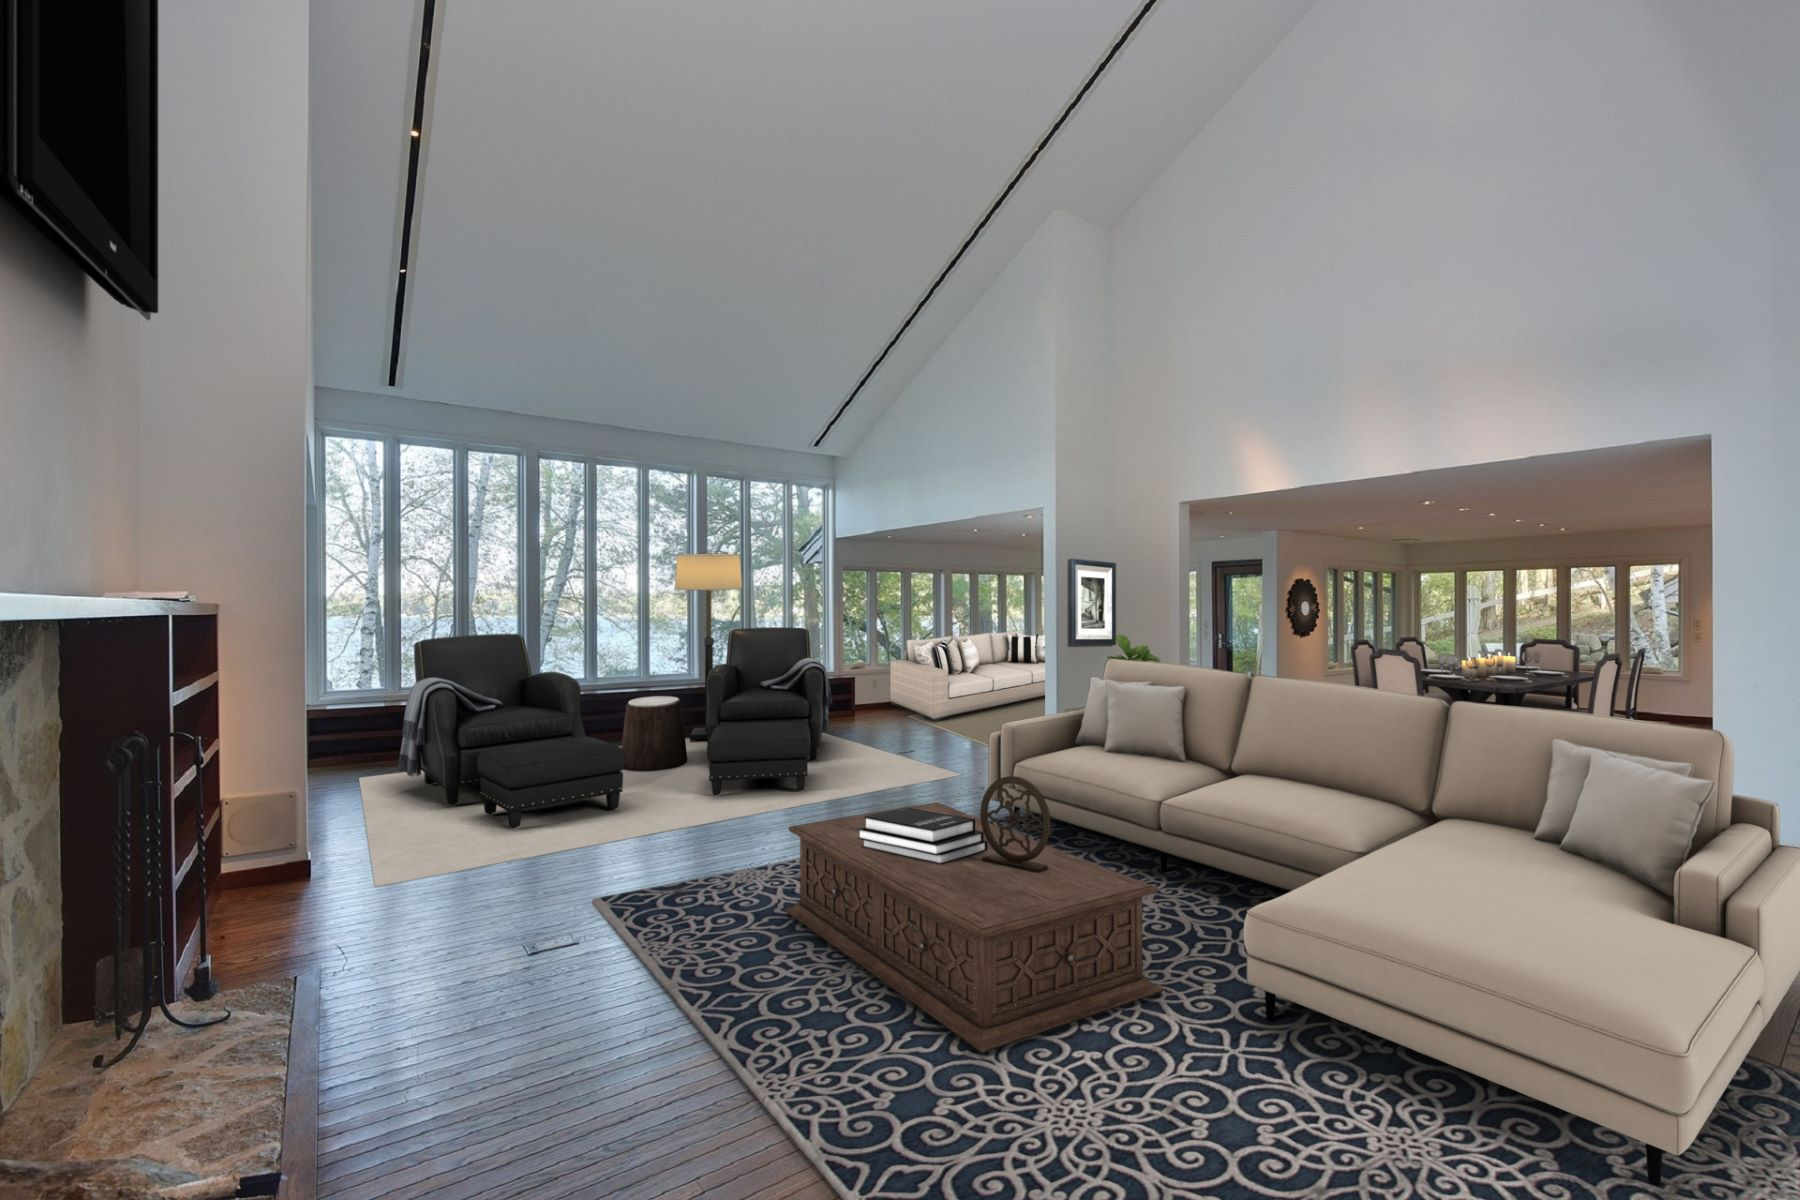 Additional photo for property listing at Pine Lake Contemporary 5975 Cedarhurst Ln Hartland, Wisconsin 53029 United States